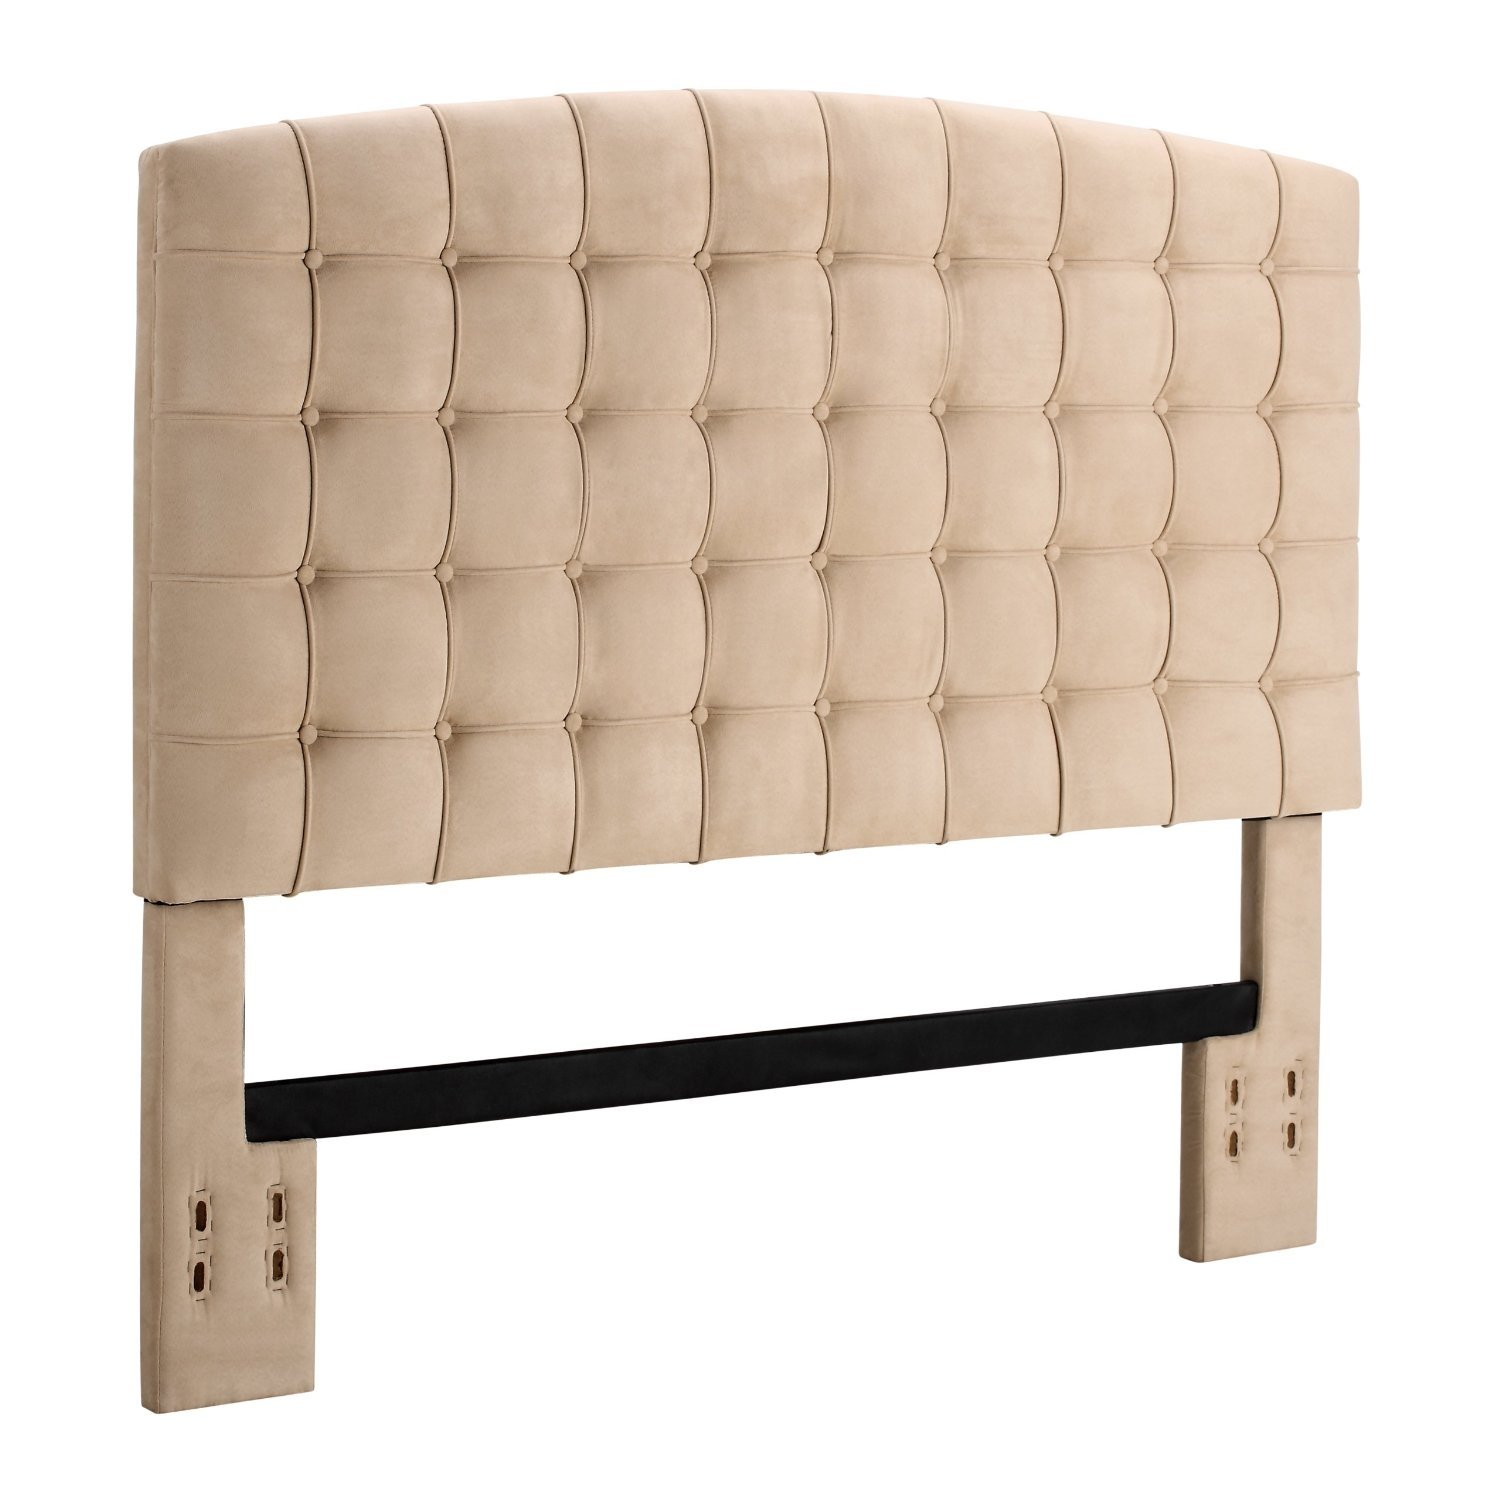 Best Full Queen Size Tufted Padded Upholstered Headboard In 400 x 300